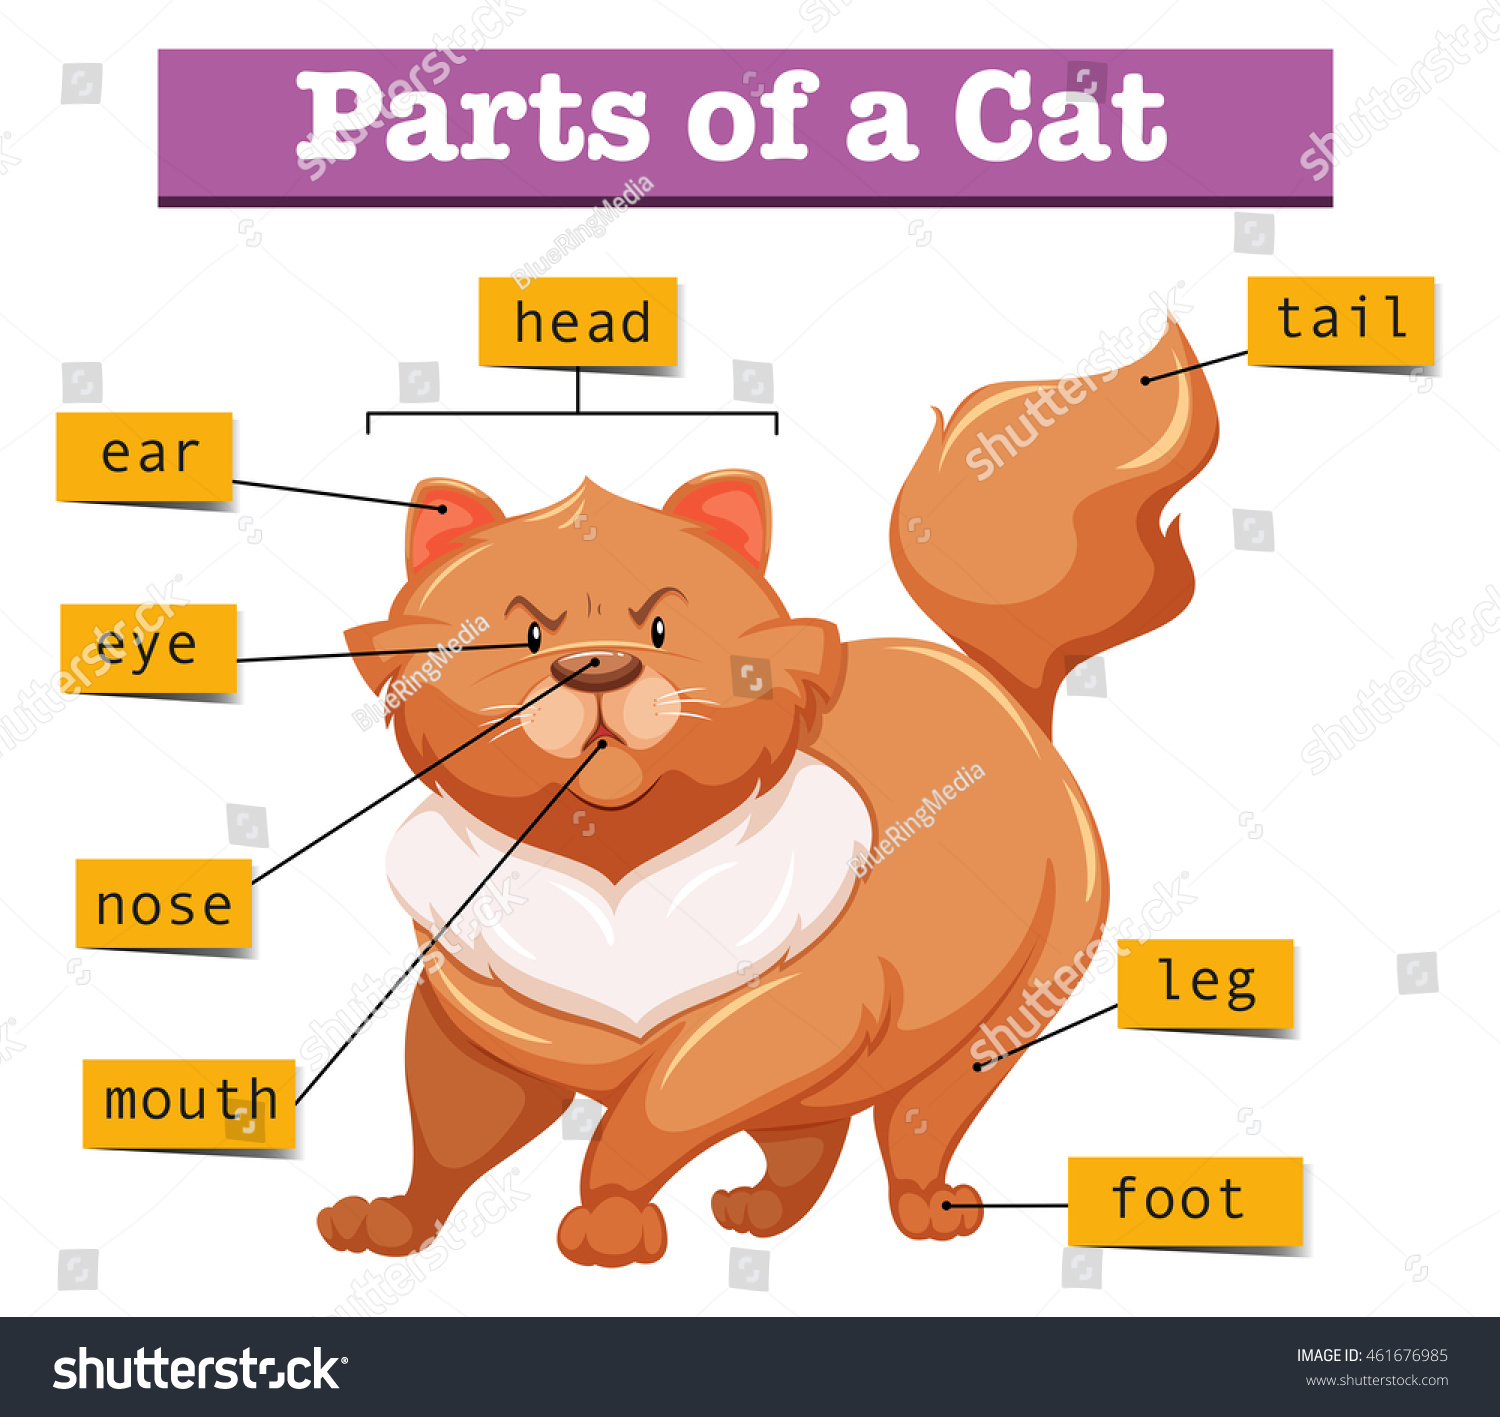 diagram showing parts cat illustration stock vector royalty free rh shutterstock com Cow's Tail Diagram cat mouth diagram with salivary glands